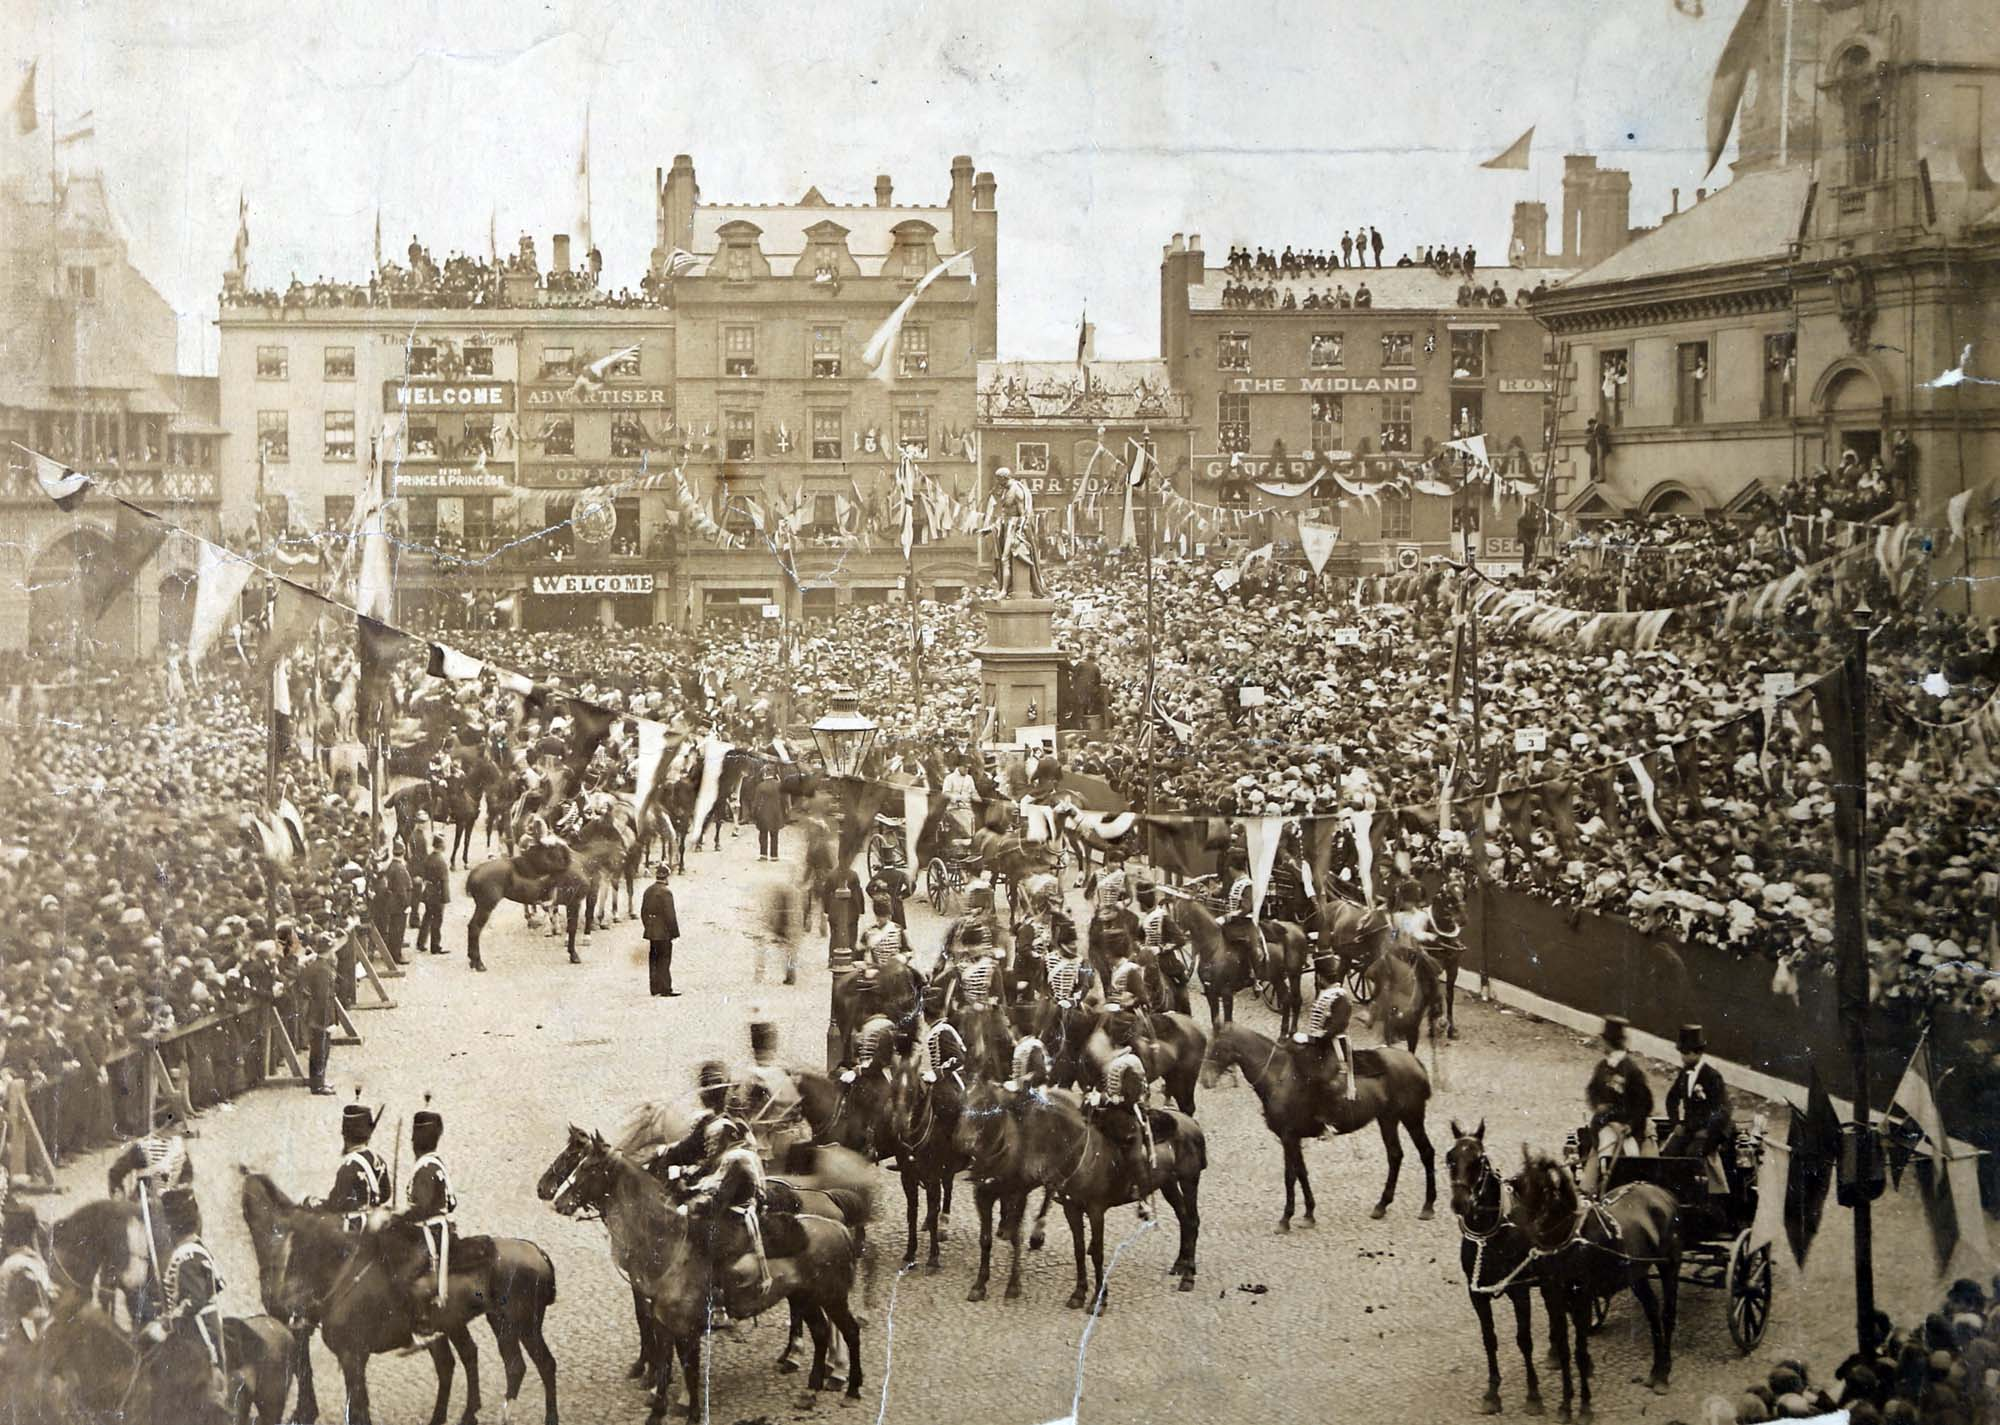 The Prince and Princess of Wales and  Princess of Wales passing by crowds in Leicester Market on the way to open Abbey Park, 1882 - Leicestershire Record Office